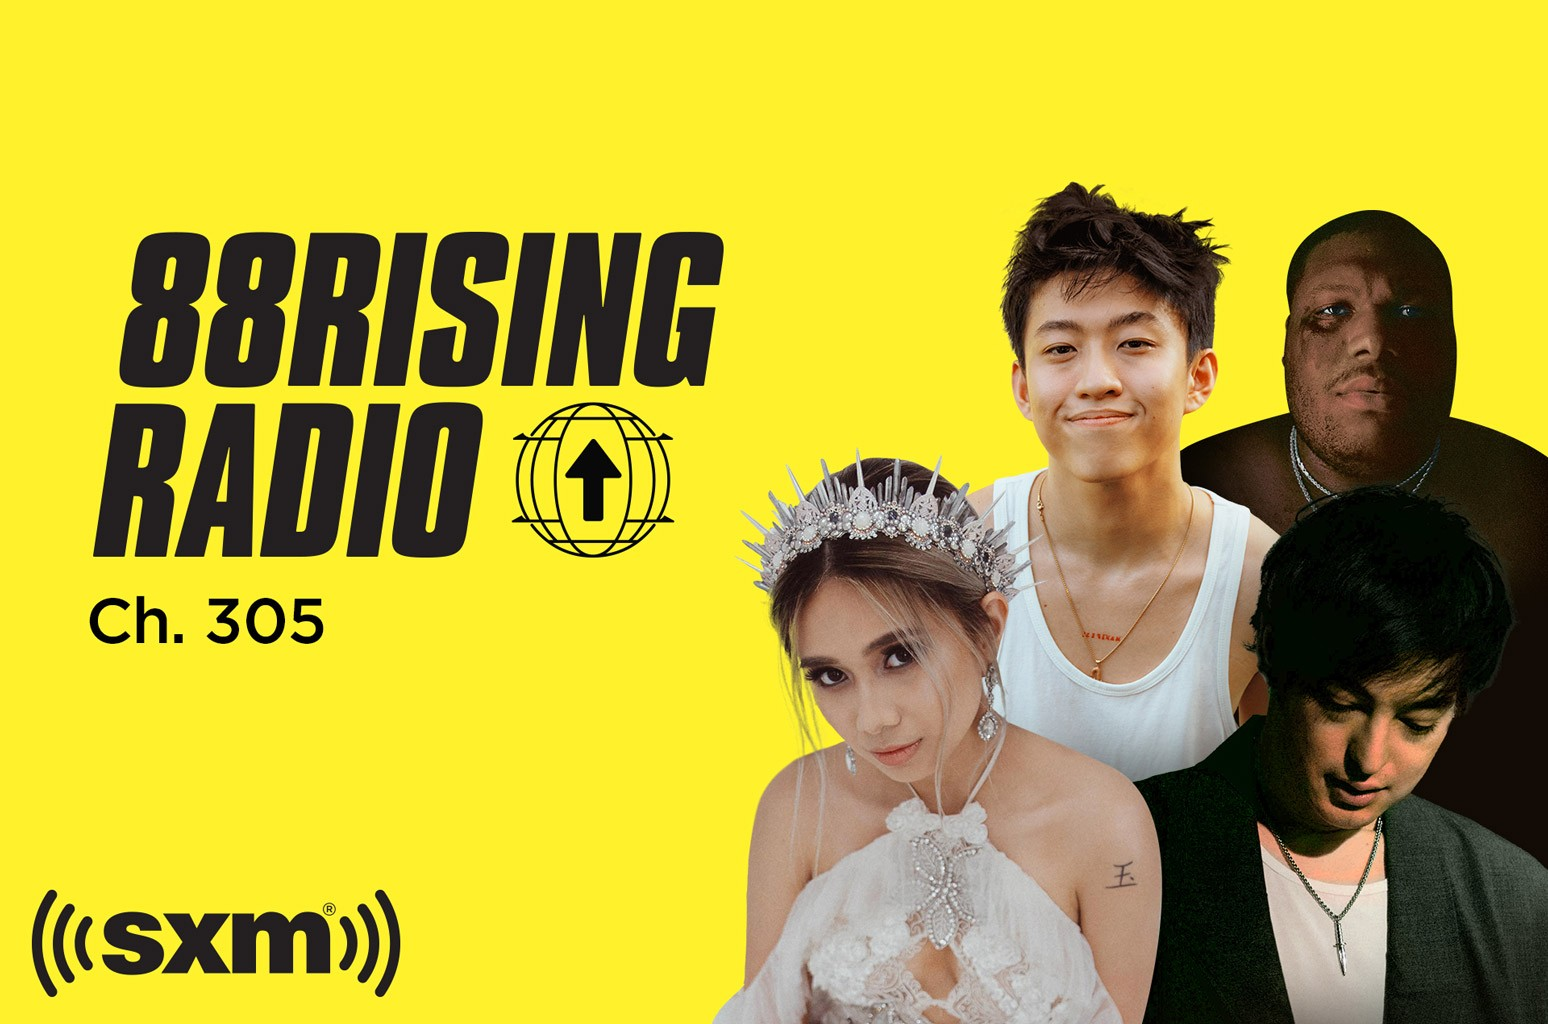 88rising guest artists